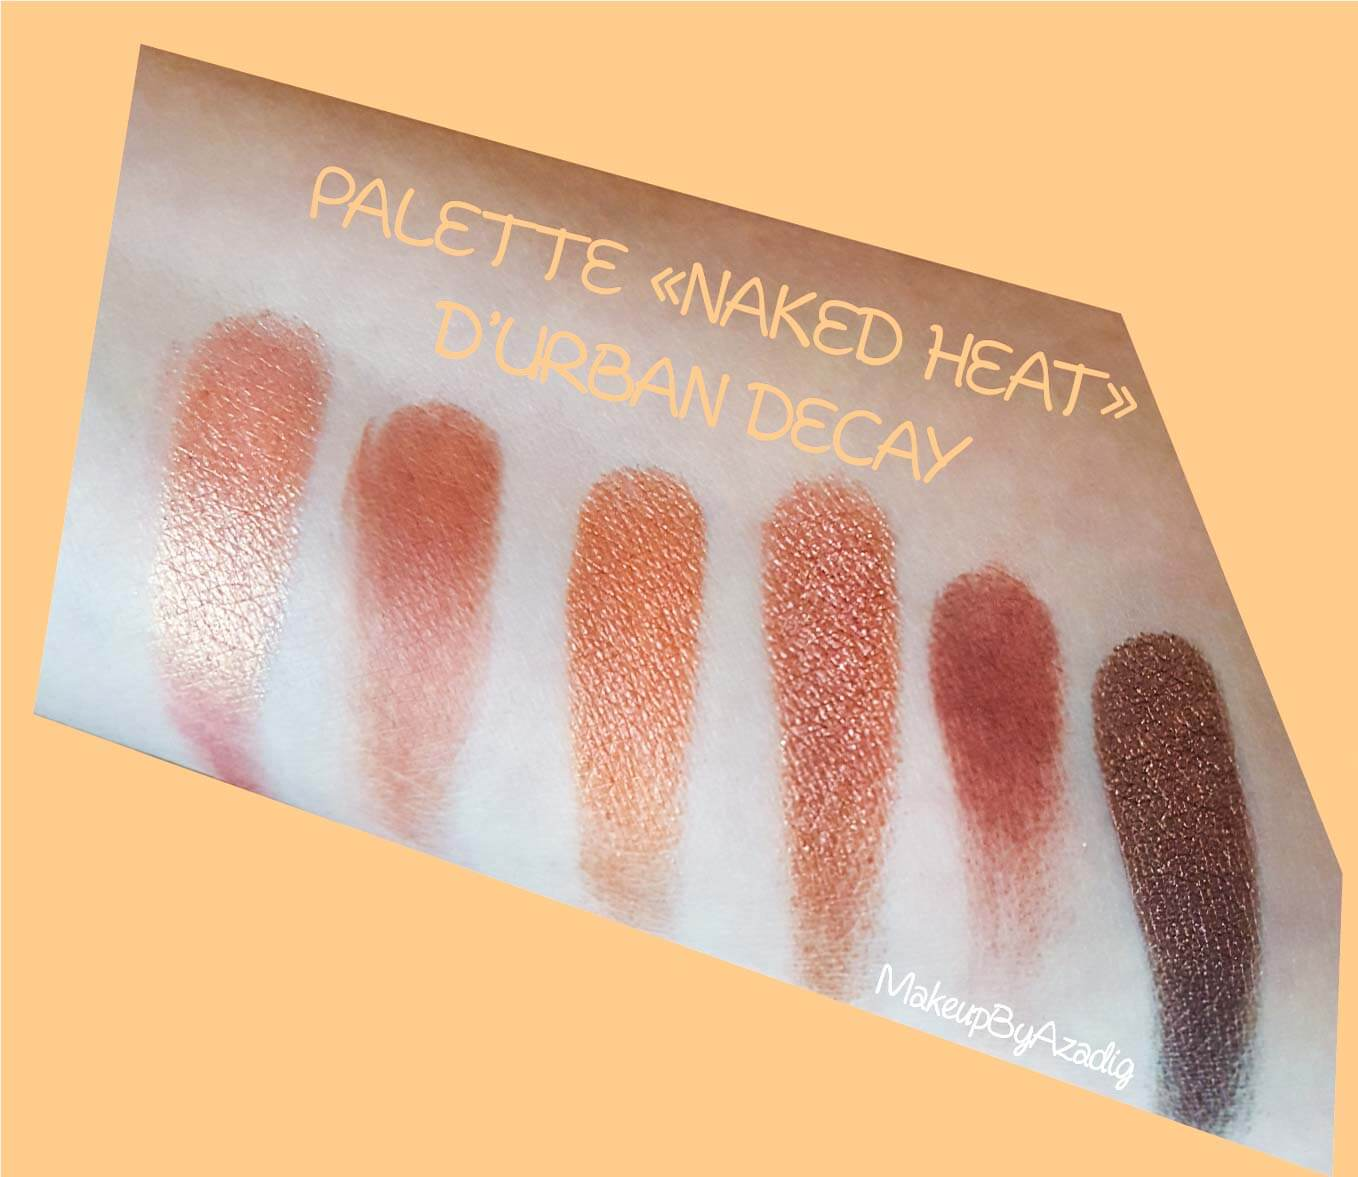 swatches-revue-review-nouvelle-palette-naked-heat-urban-decay-sephora-avis-prix-france-makeupbyazadig-swatch-miror